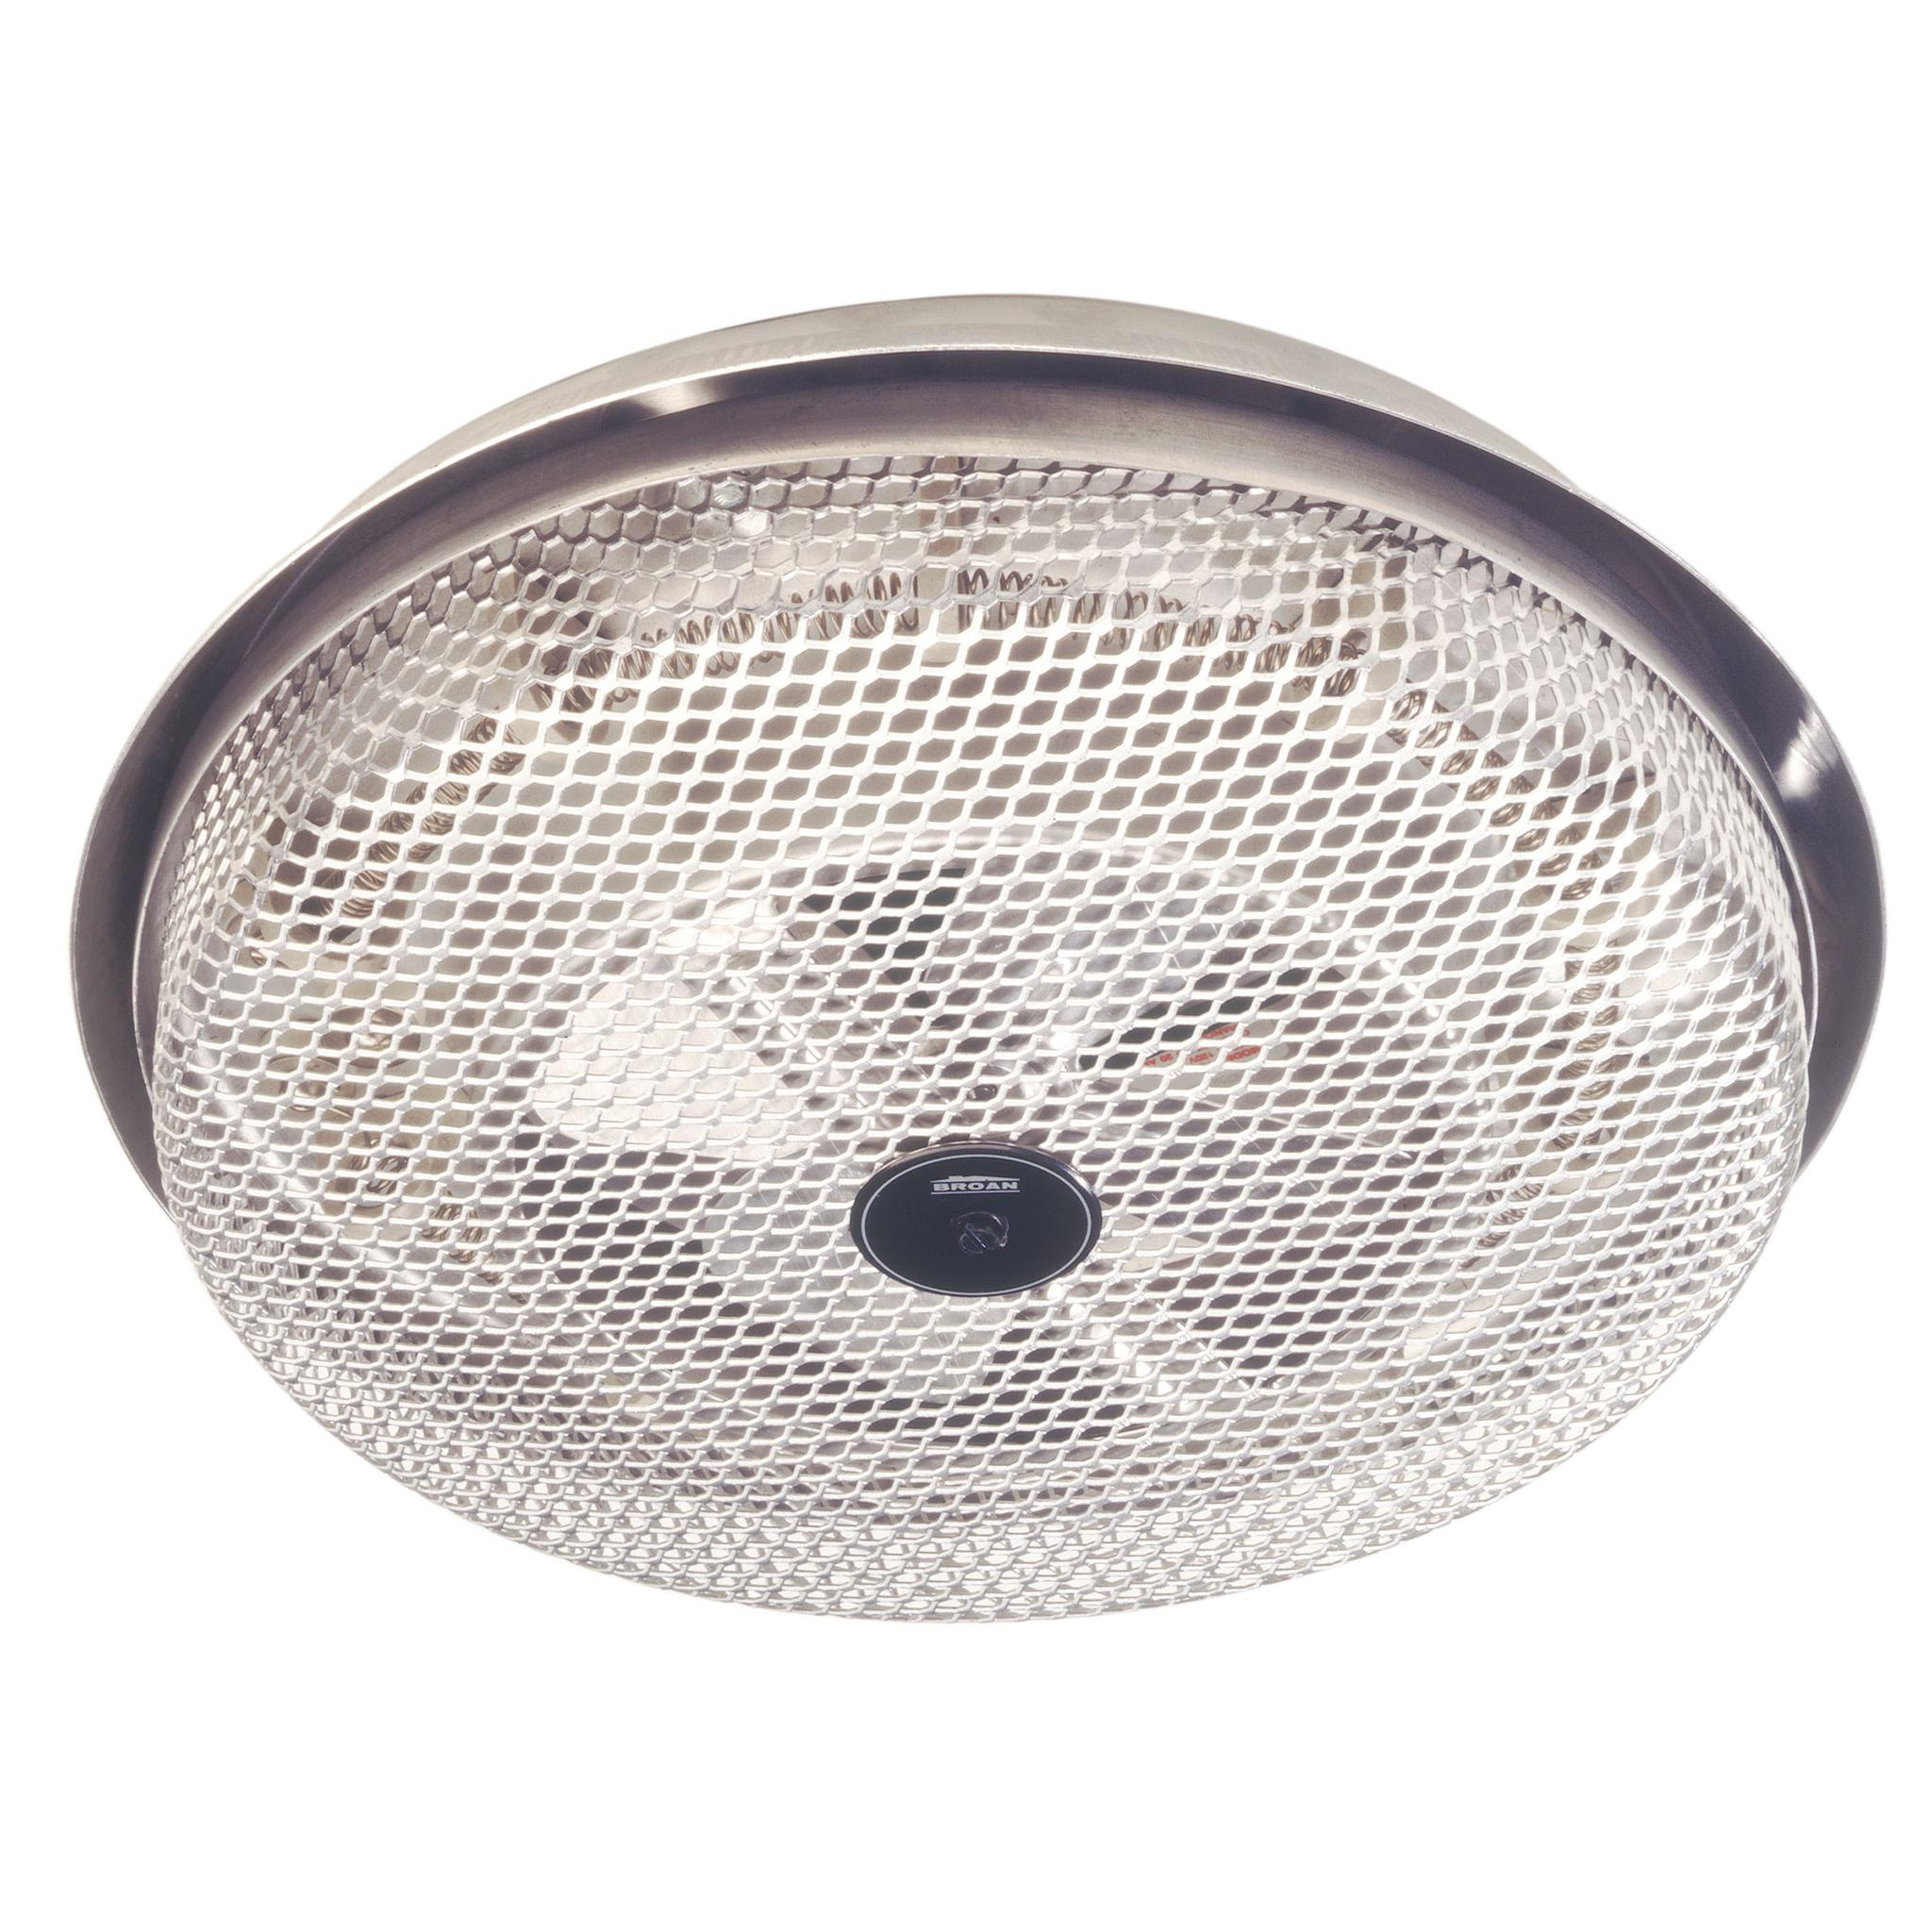 BROAN 157 Low Profile Fan Forced Ceiling Heater